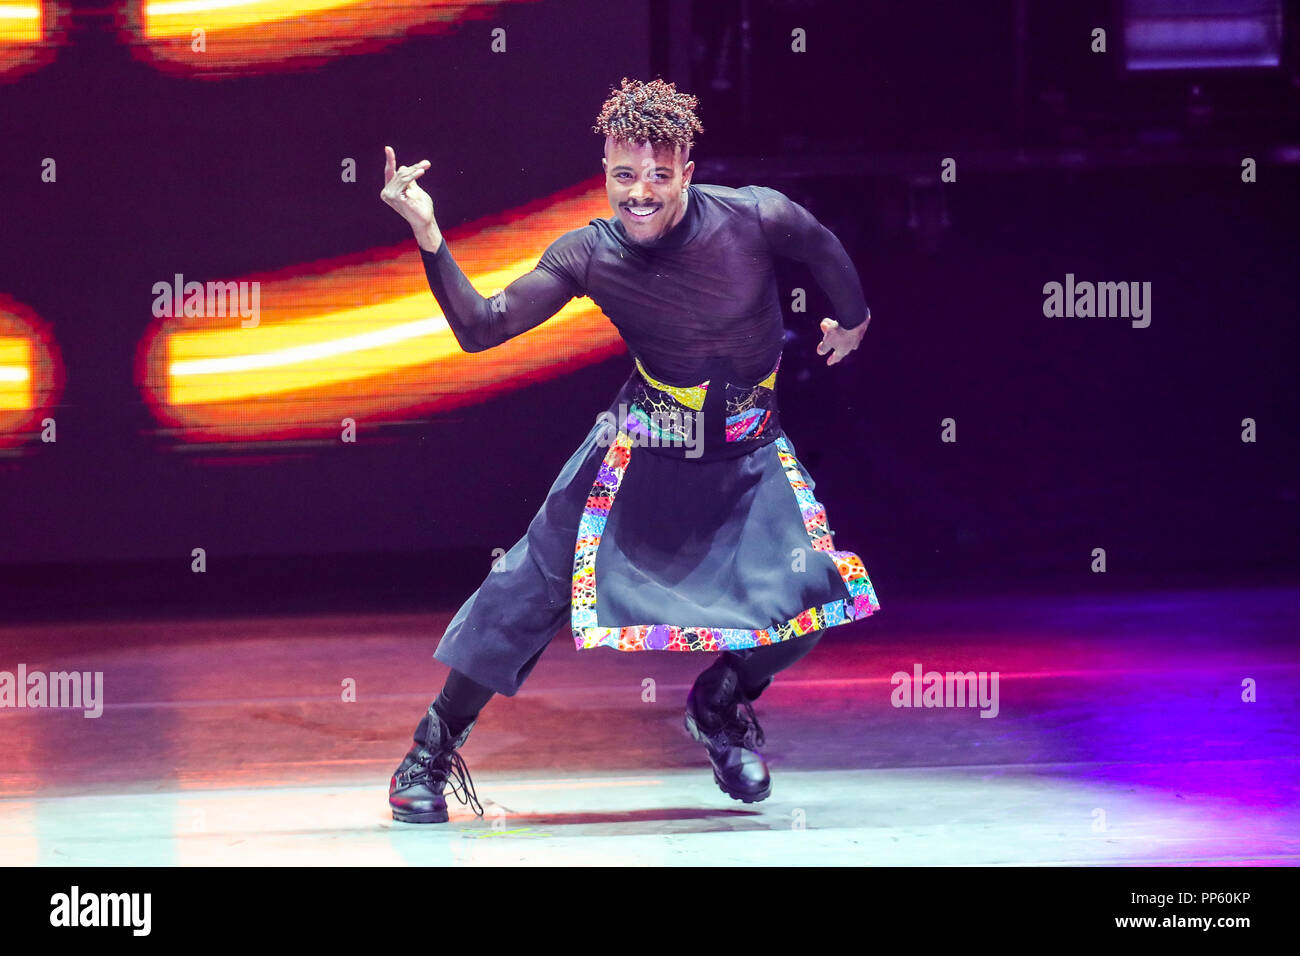 SO YOU THINK YOU CAN DANCE the Tour performs live.  So You Think You Can Dance is an American televised show dance competition show that airs on Fox in the United States and is the flagship series of the international So You Think You Can Dance television franchise. - Stock Image